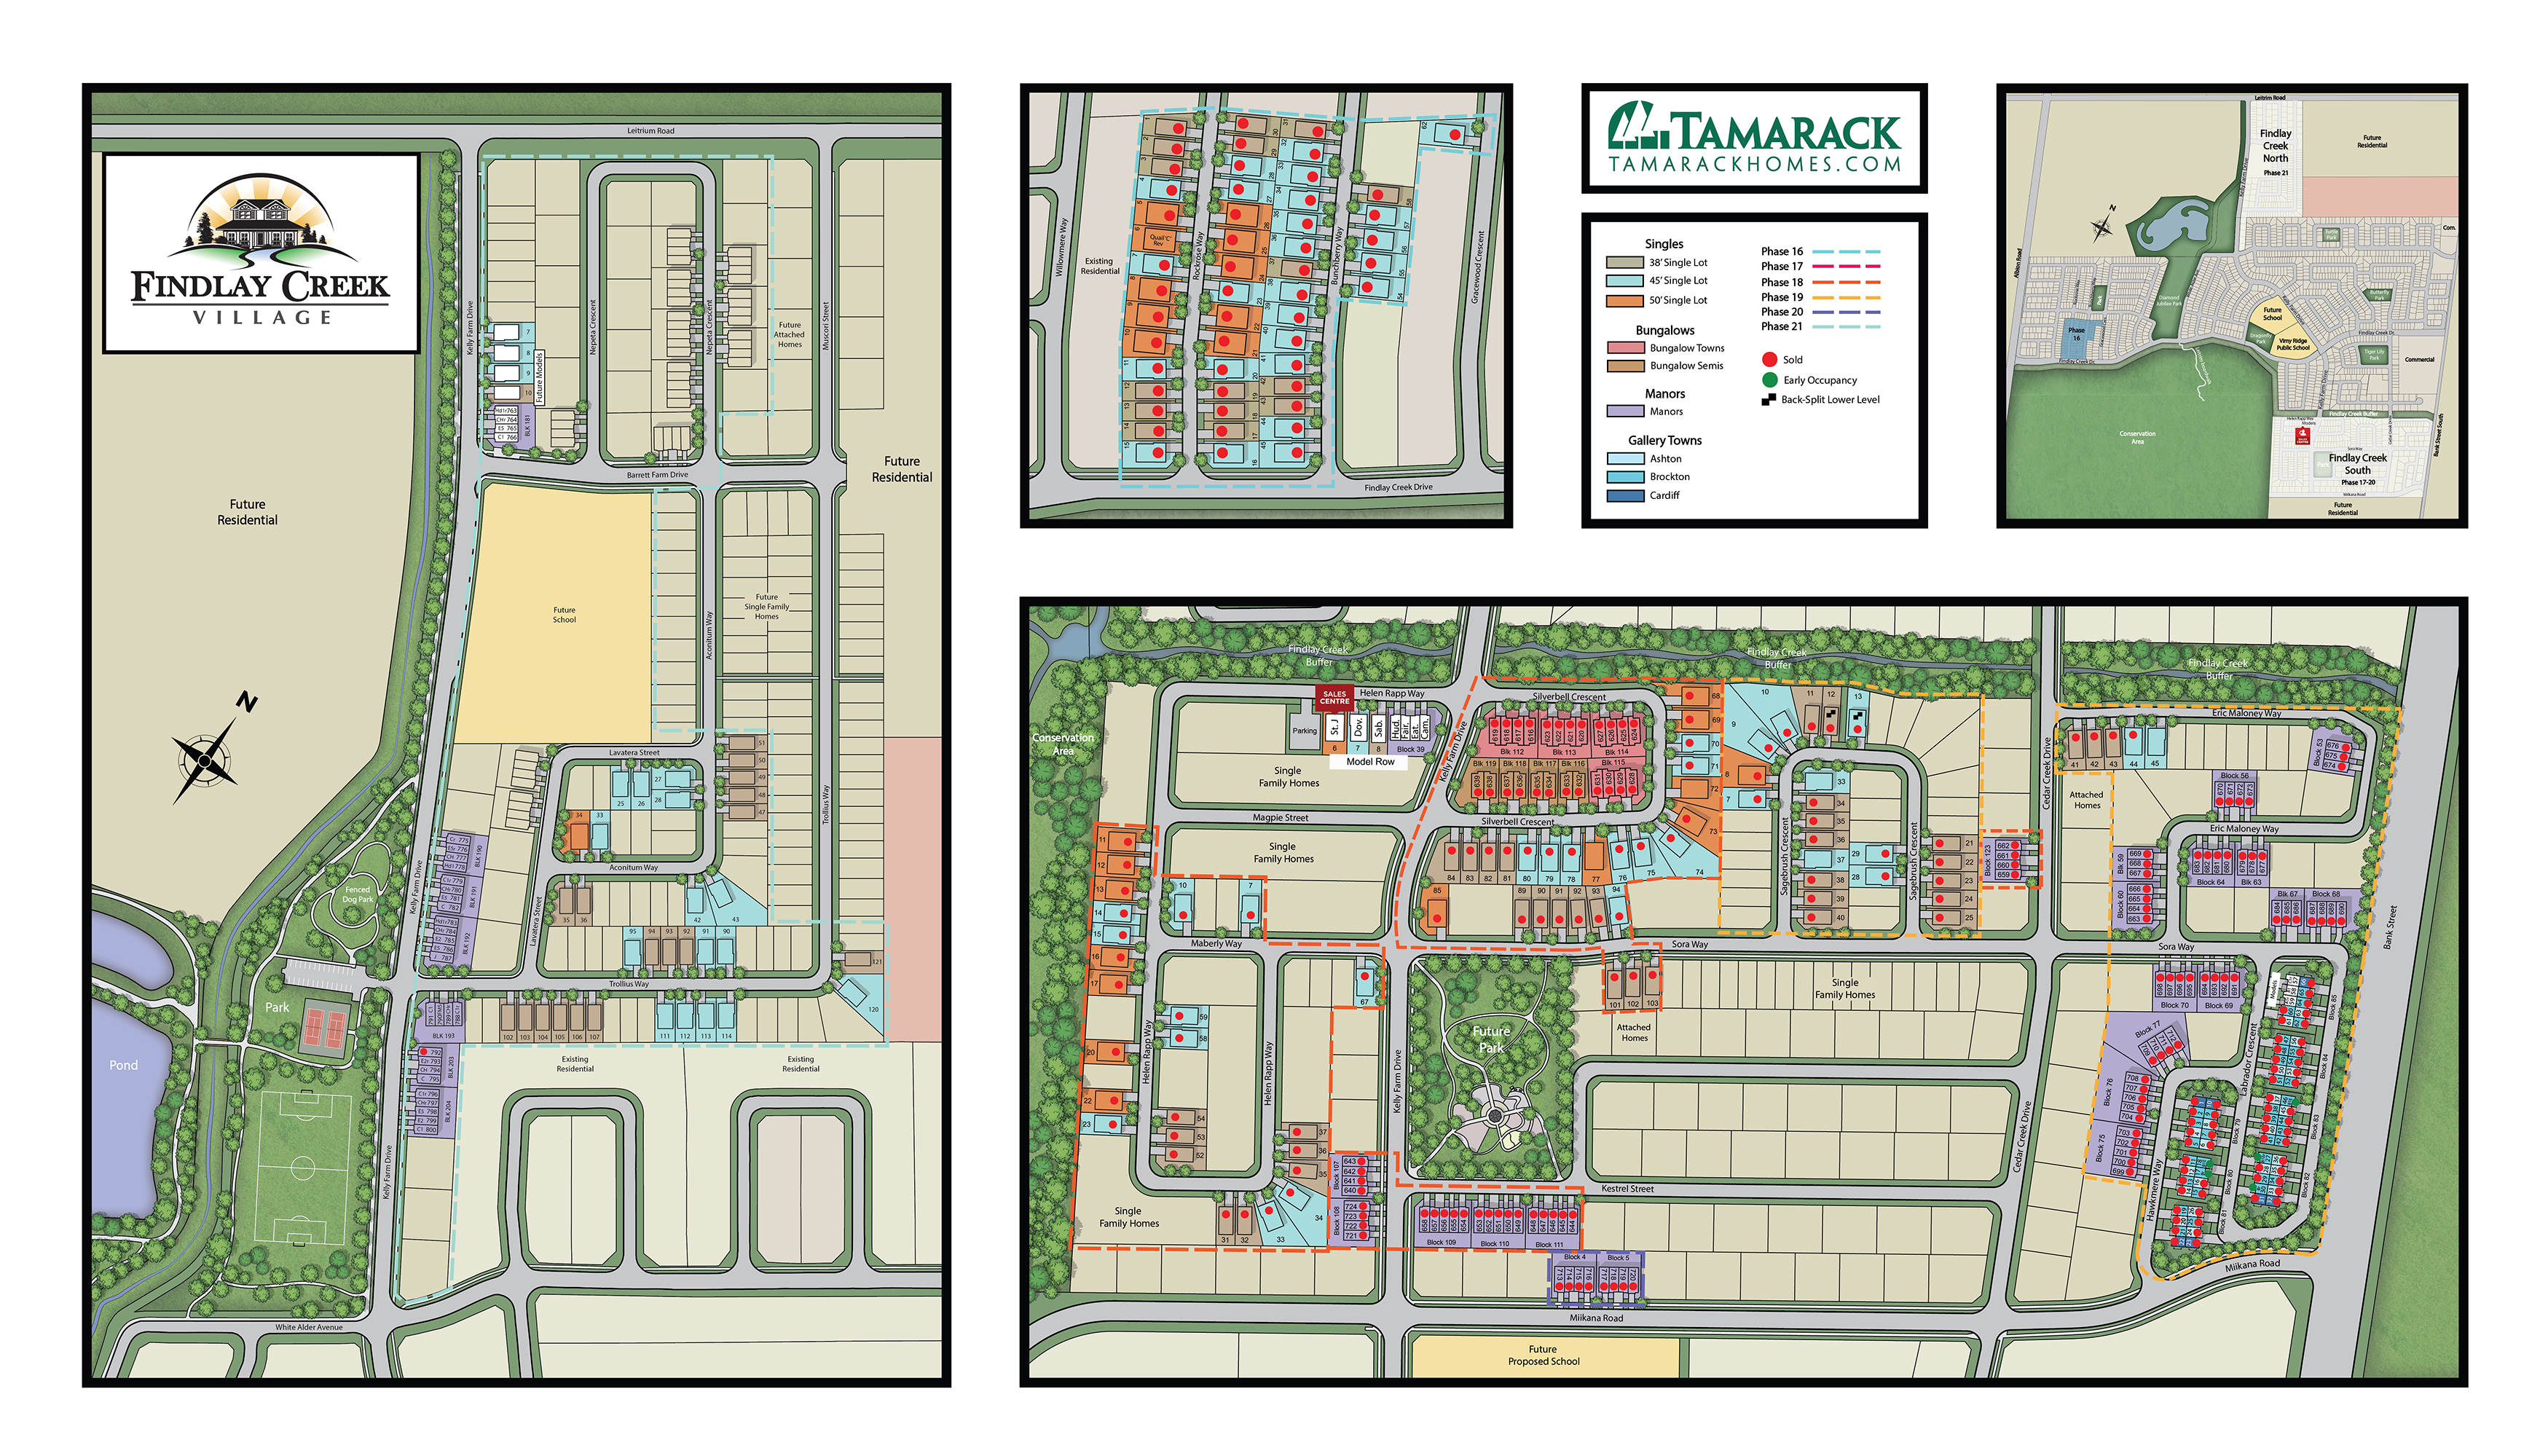 Large Full Color Sitemap of Findlay Creek Village